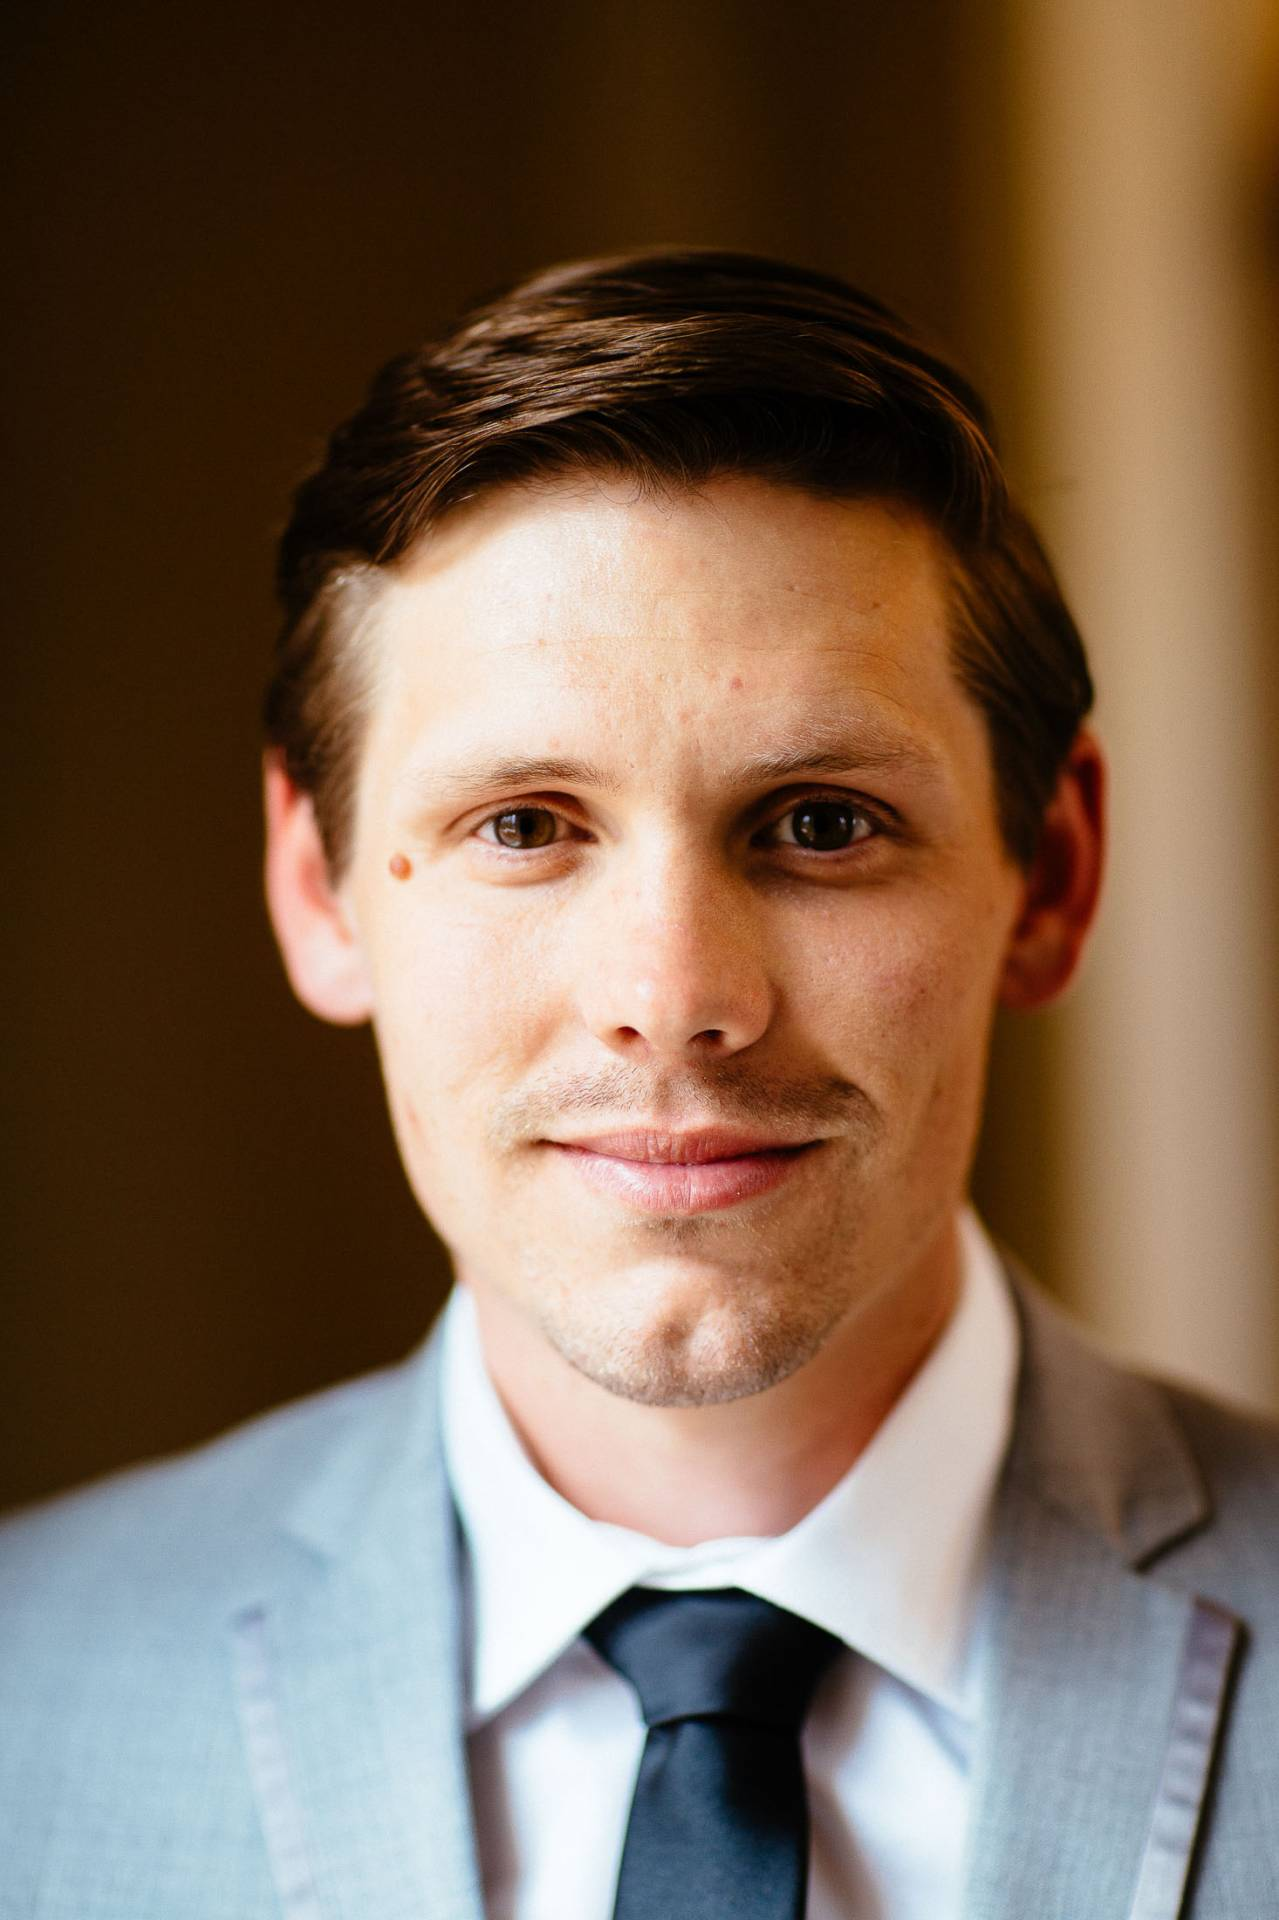 Portrait of groom on his wedding day at The Broadmoor.